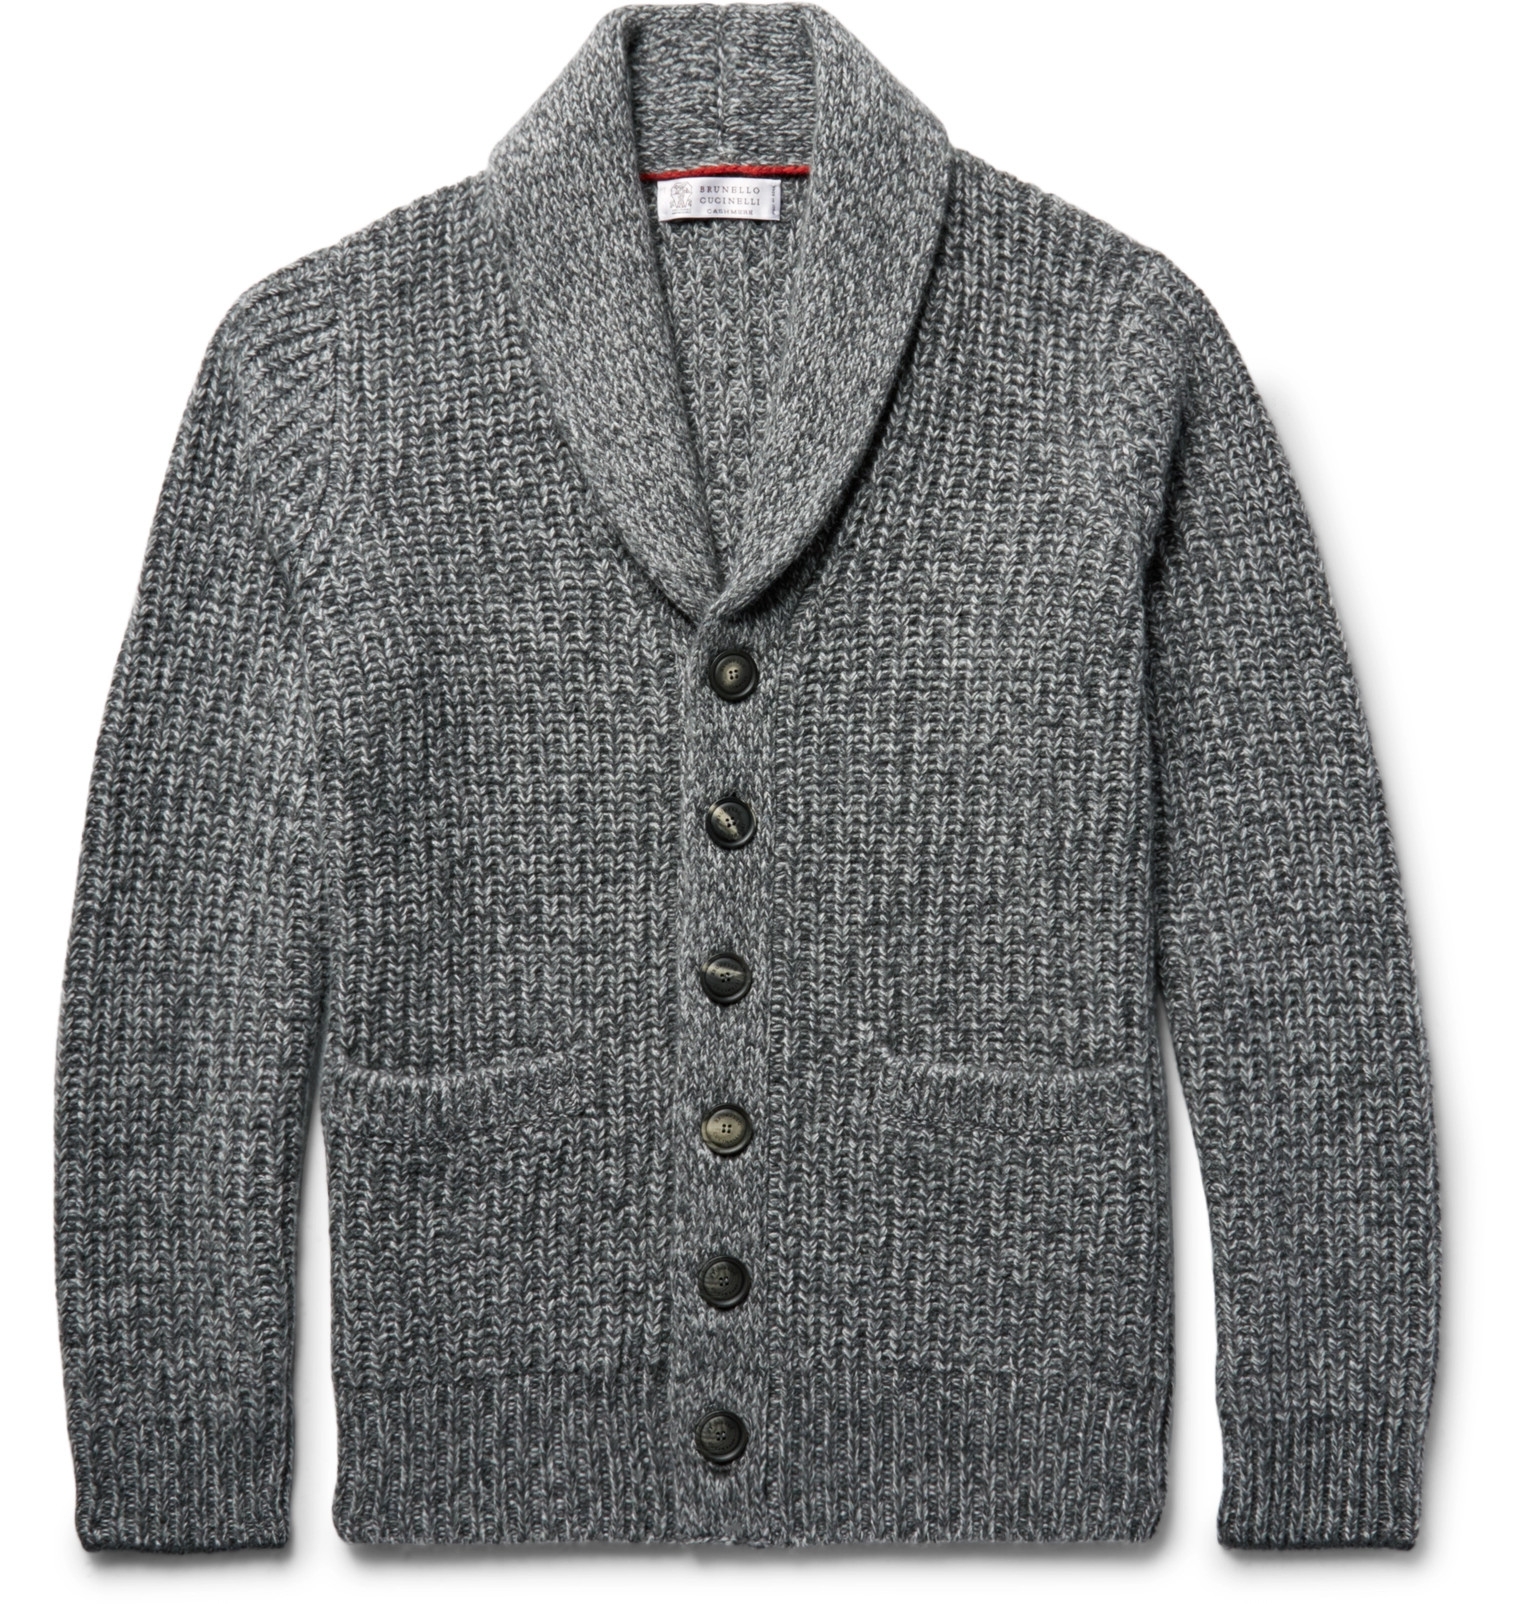 Brunello Cucinelli - Shawl-Collar Ribbed Mélange Cashmere Cardigan